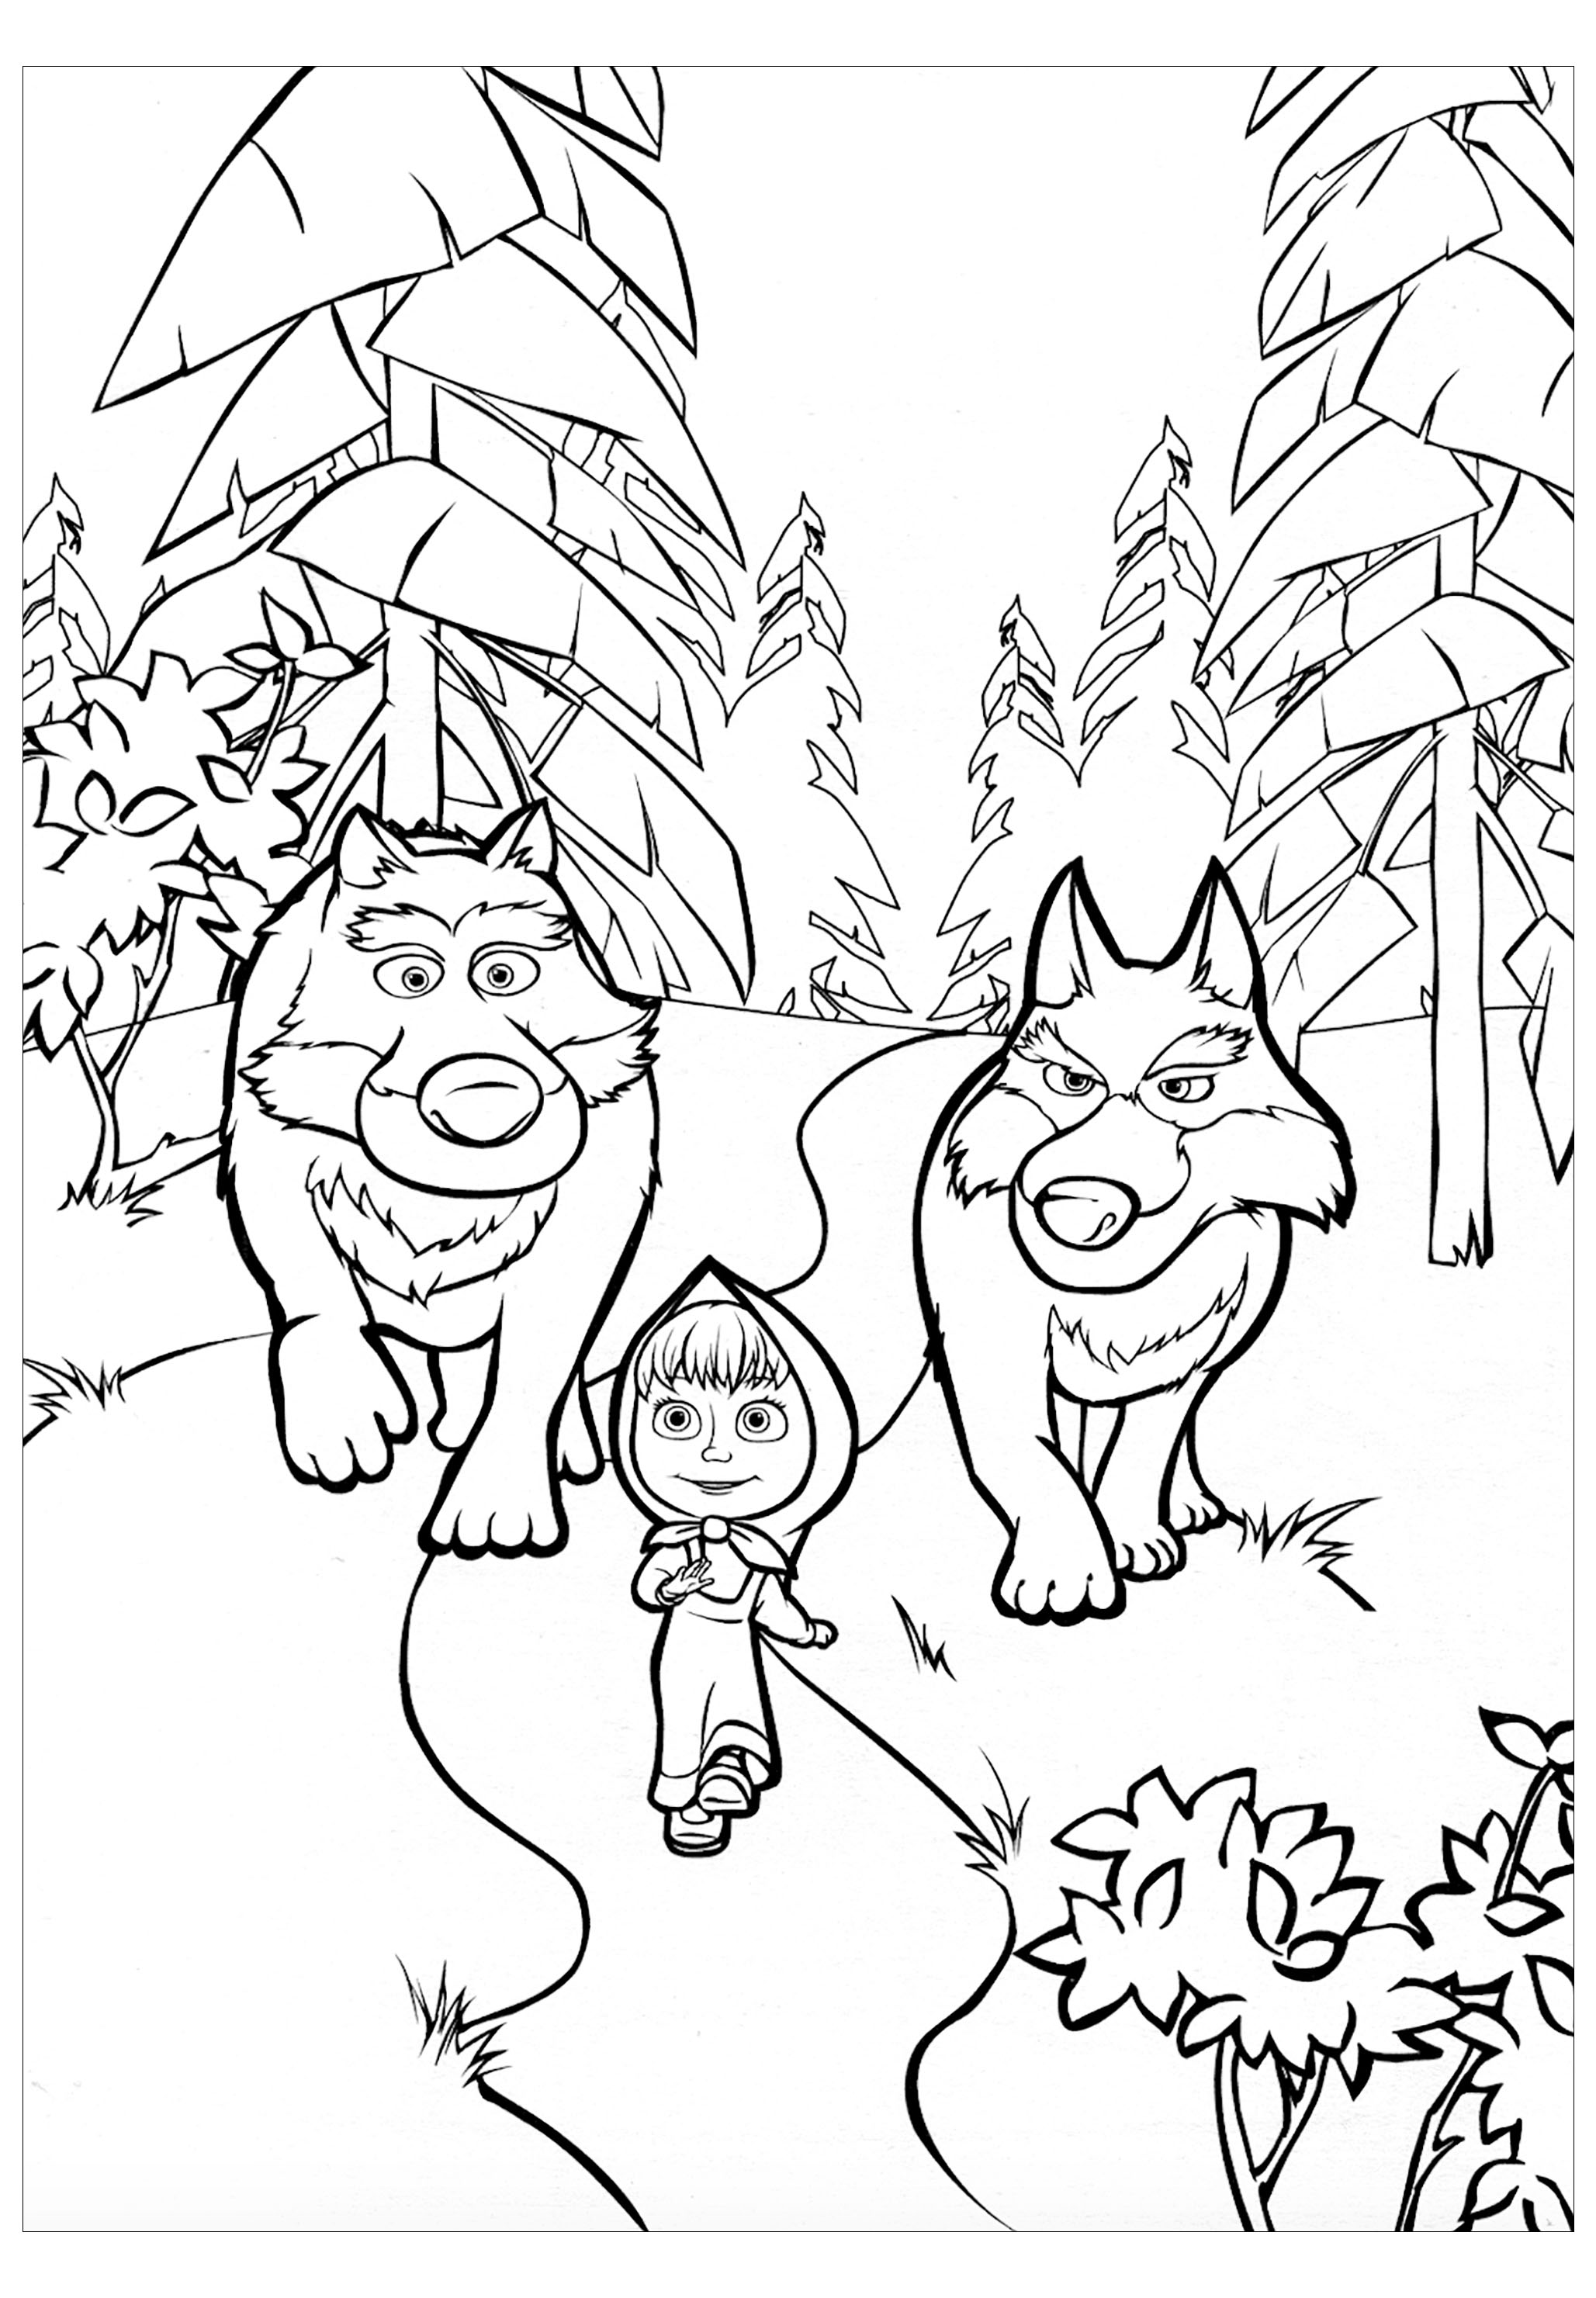 Wolf to download - Wolf Kids Coloring Pages